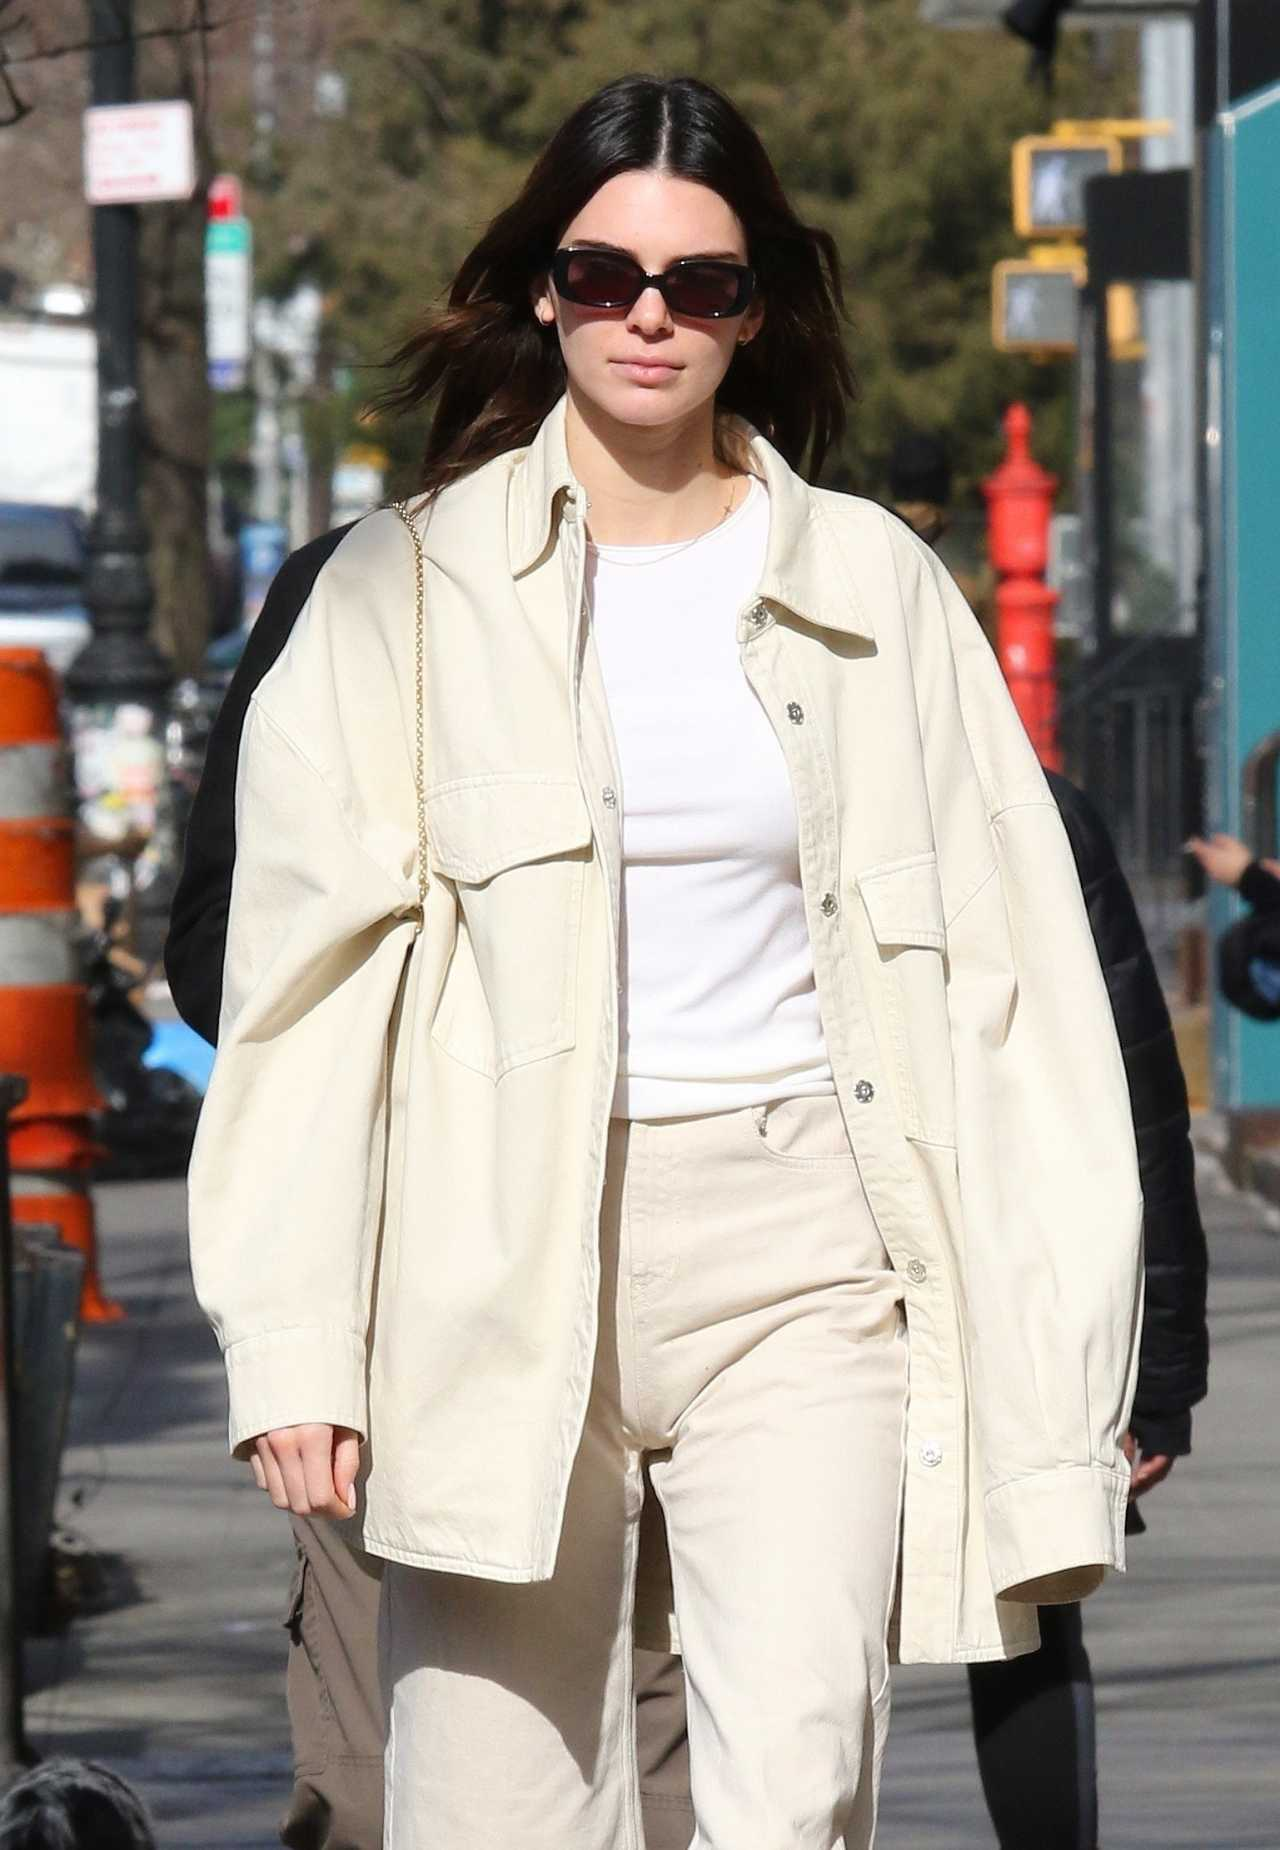 Kendall Jenner donning a white basic tee with a crew neck